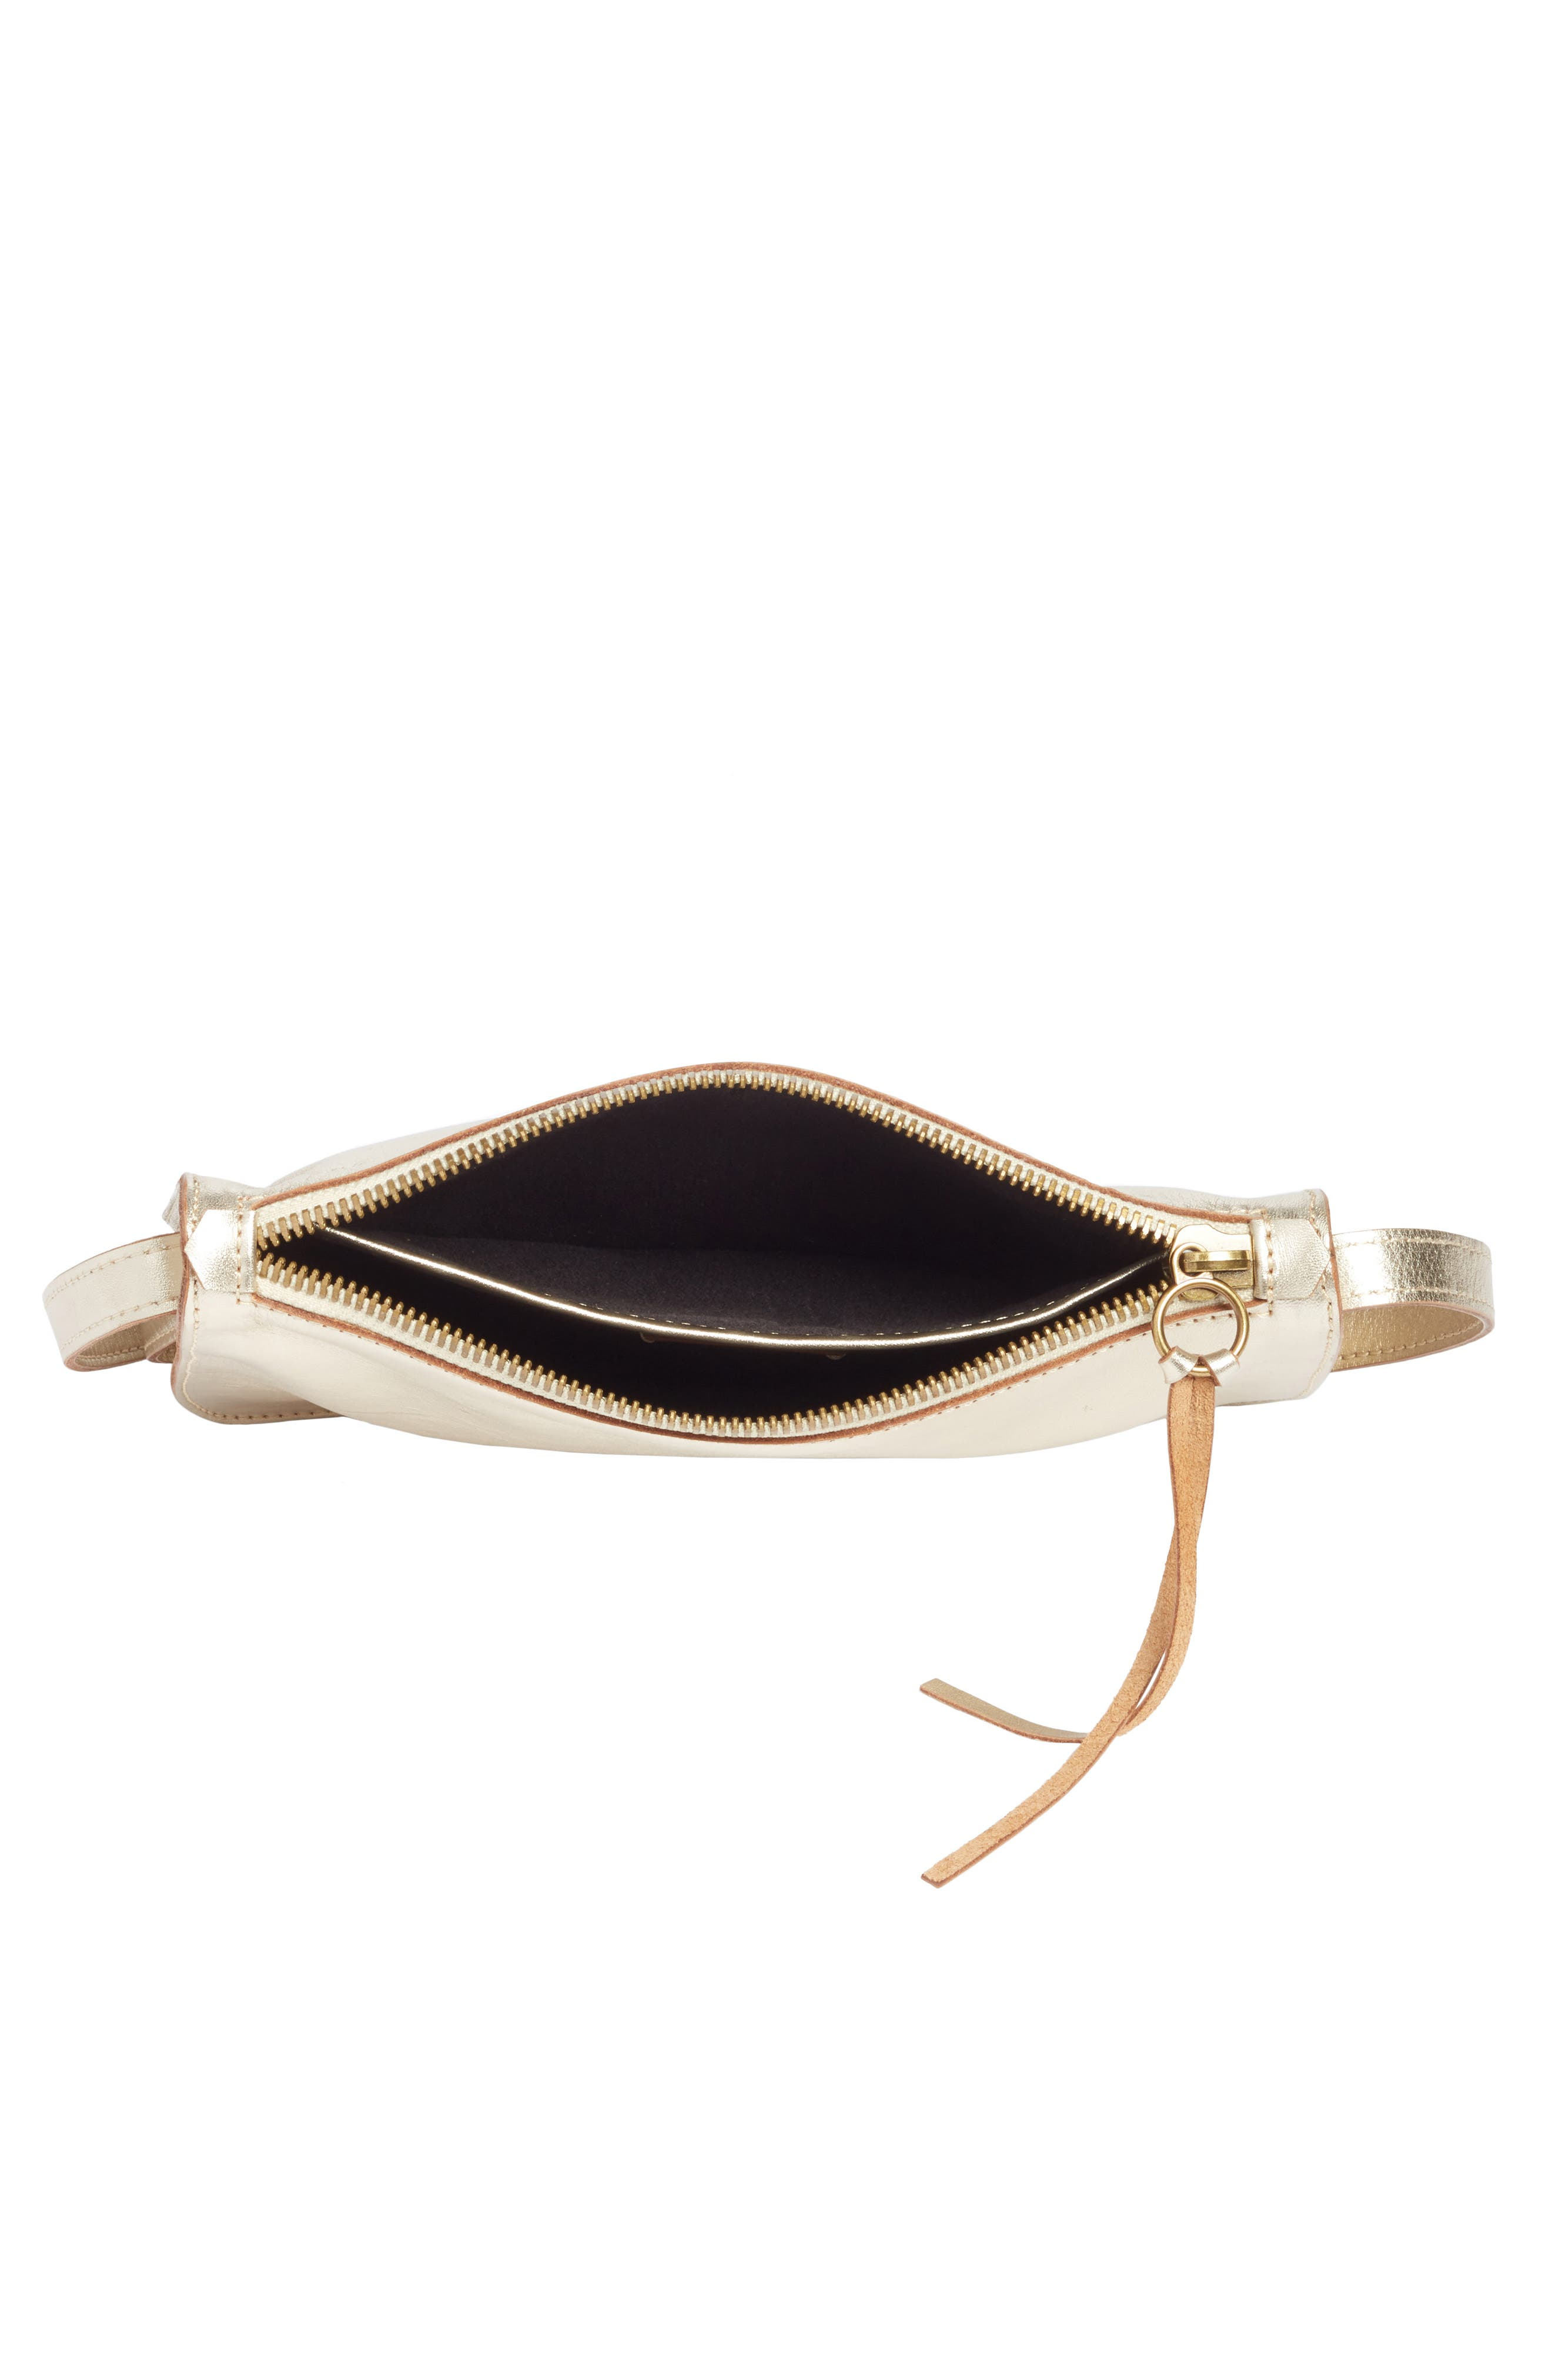 Leather Crossbody Bag,                             Alternate thumbnail 4, color,                             710